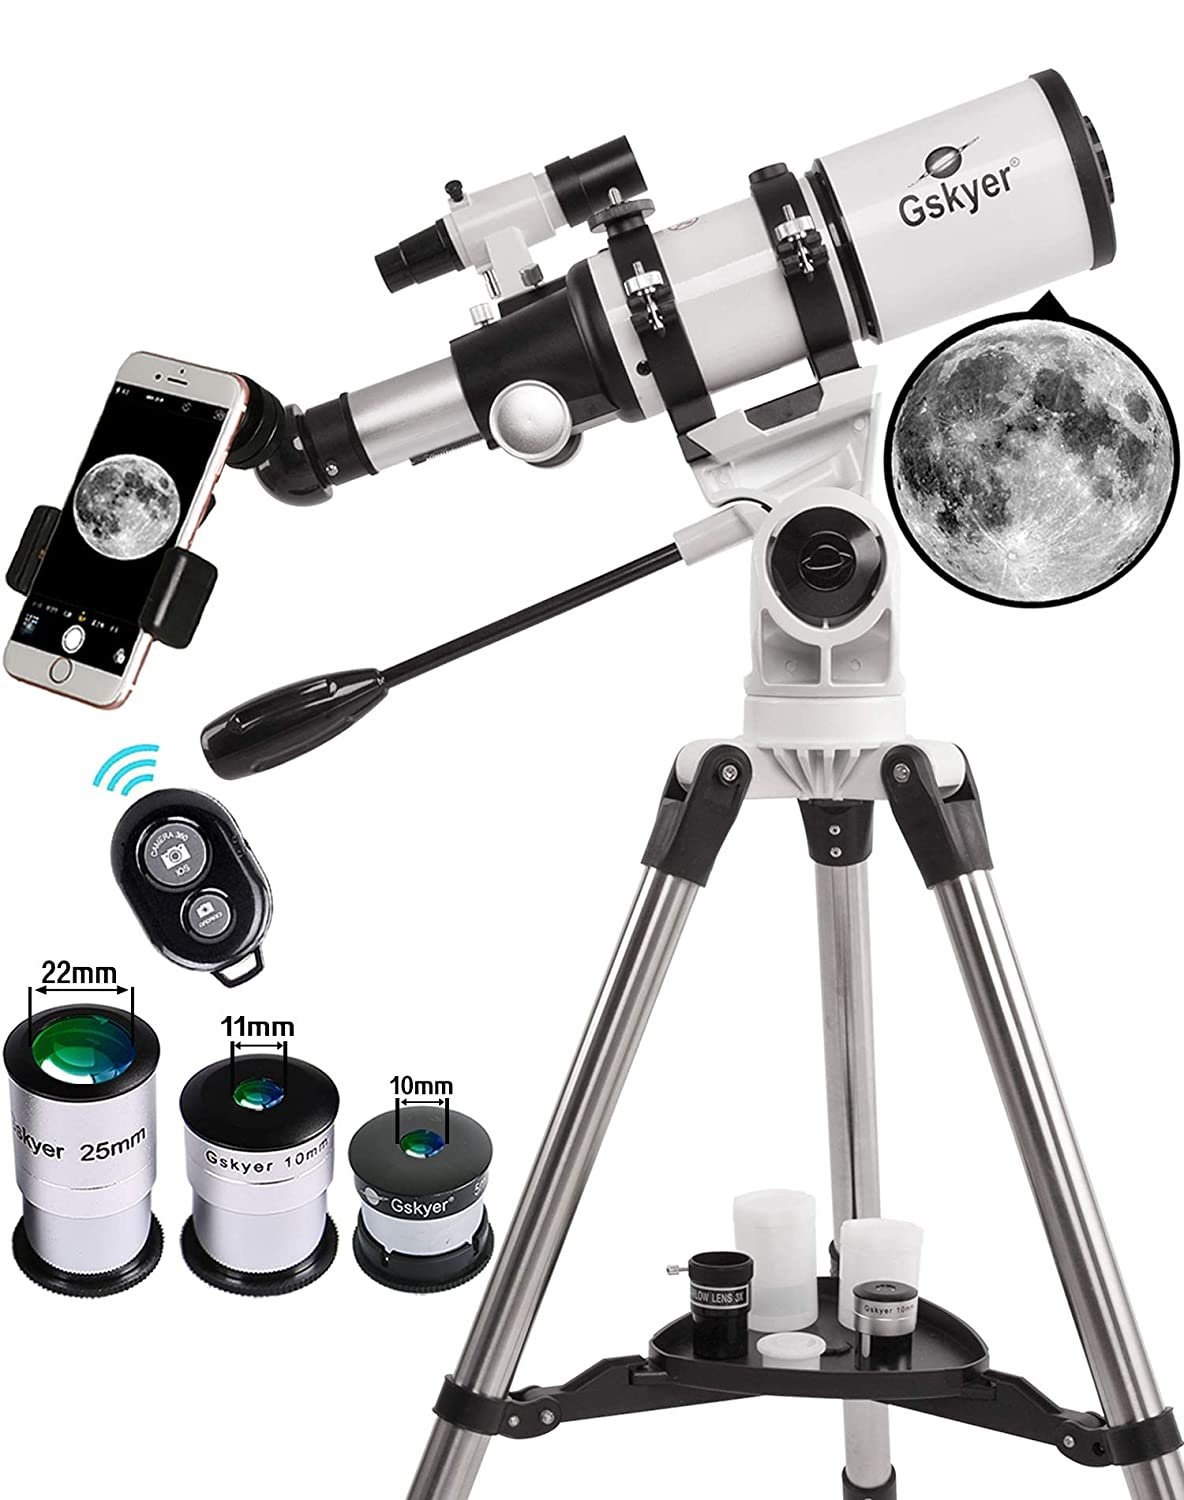 Gskyer Telescope, Travel Scope, 70mm Aperture 400mm AZ Mount Astronomical Refractor Telescope